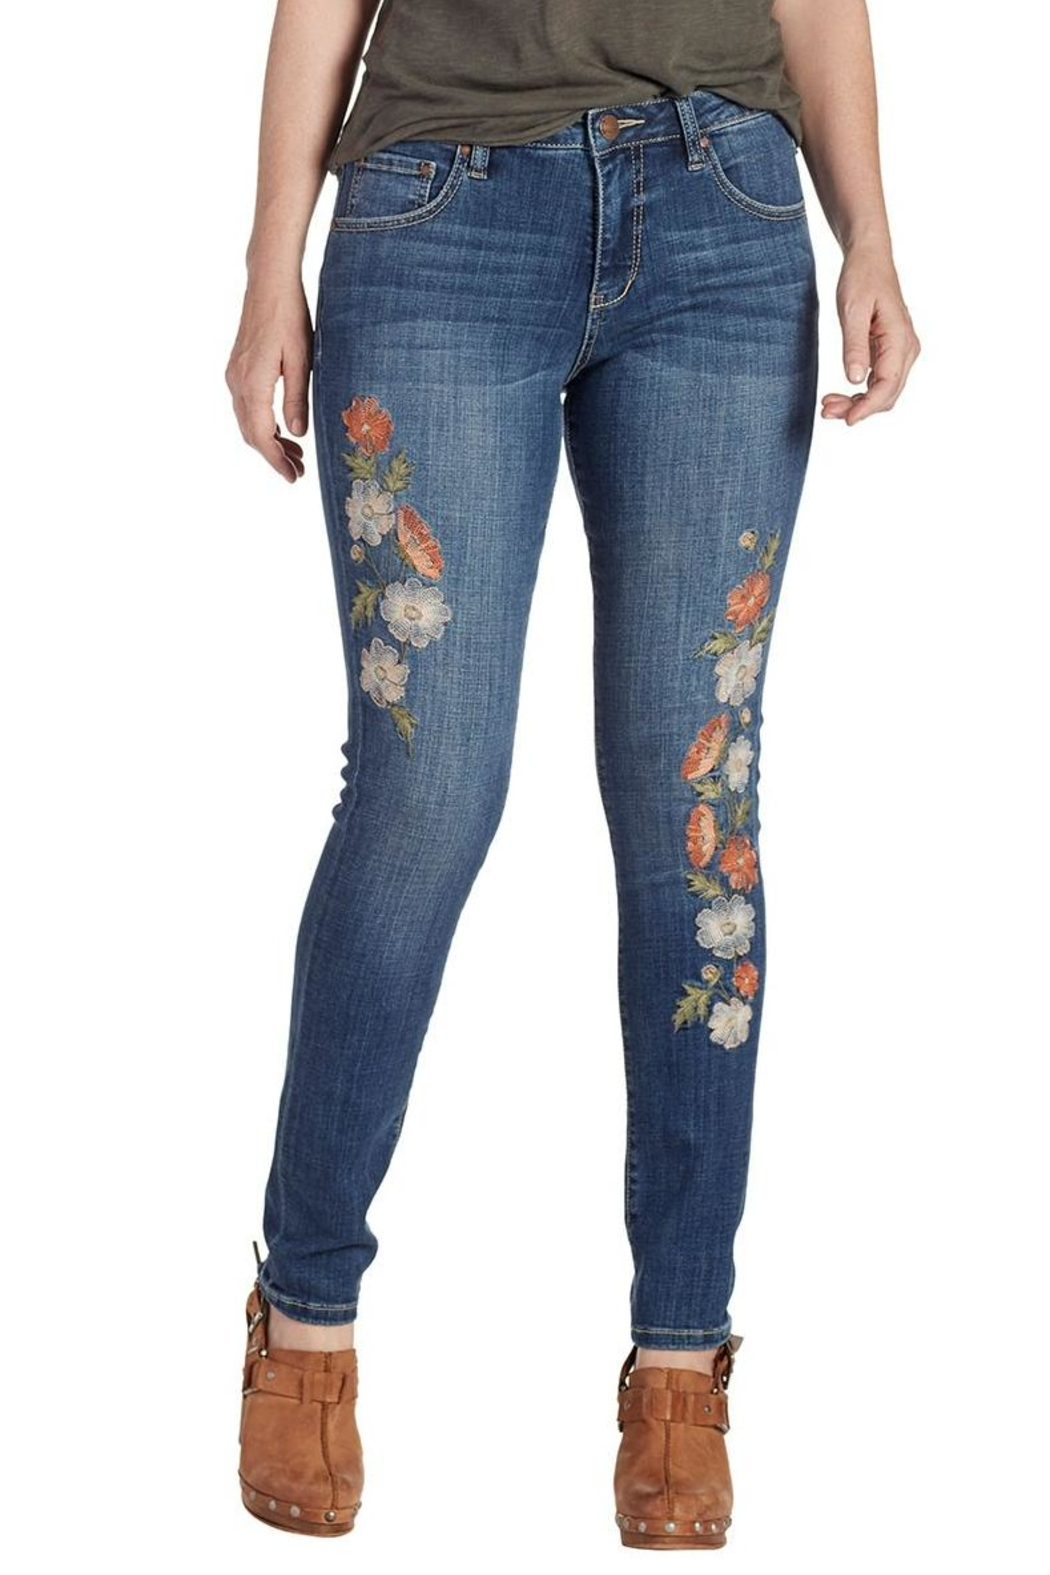 JAG Jeans Embroidered Skinny Jeans - Main Image